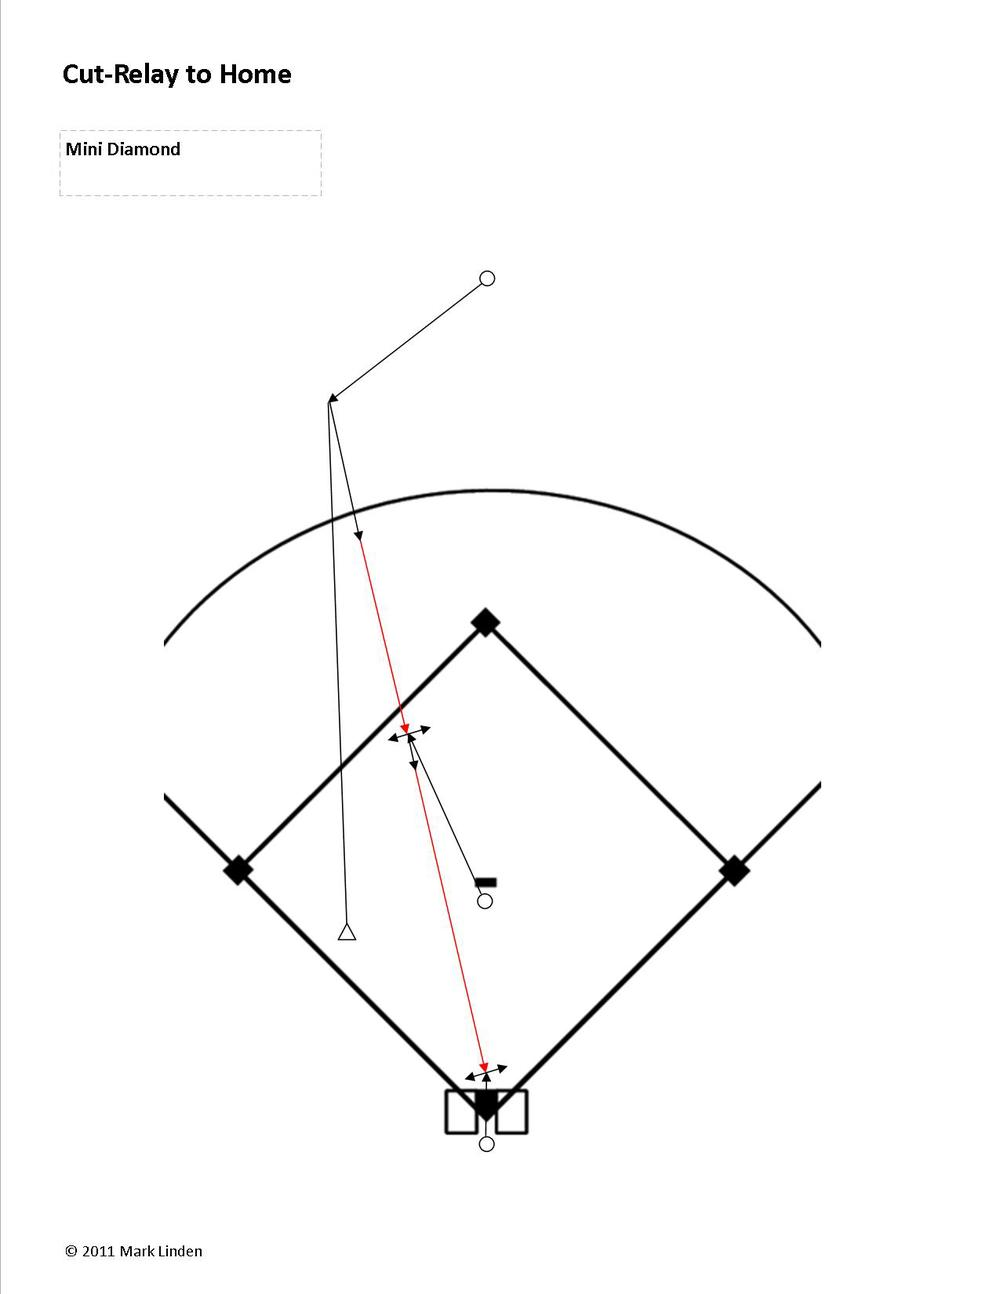 "Coach rolls a ball to the center fielder. Mix up locations between left-center and right center field, so the pitcher gets the idea that they move to different spots depending on the location of the ball. Pitcher has three responsibilities: 1. Line up between the base and the ball*, 2. move out towards the outfielder to a point midway between the ball and home plate, 3. Calls for the ball. Use the term you prefer for the call (anything except ""Cut' ...we don't want the cut-relay player using the word, ""Cut"" because the catcher uses that term.  We don't want two players using the same term to make a call).  I like either ""Hit me"" or ""Ball, ball, ball"" When receiving and throwing the ball the Pitcher first gets to the proper spot on the field to catch the ball and gets in a ""Ready Position"".  They ""Move Their Feet to Catch"", ""Turn Glove Side"", then ""Moves Their Feet to Throw"".  After throwing the ball the pitcher follows their throw in a straight line towards their target - ""Follow Your Head"" *The key to getting lined up is for the pitcher to 'look both ways' (same as they would do before crossing a street).  Look to the ball, back to the plate, look to the ball, then back to the plate…  this exercise enables the pitcher to identify the 'line' between the ball and home plate.  They want to get on this line as quickly as possible.  Note: young players are resistant to looking away from the ball.  It will take them a few days of working in this drill before they start making it a habit of looking both way.  Remember, we are asking the pitcher to do a lot of stuff in a short period of time in this defensive situation.  Their young brains will require some time to get this…be patient as a coach.  The WILL get it after a while. Catcher moves out to their 'position' a foot in front of home plate.   As the ball is on its way from the center fielder to the pitcher the catcher hollers, ""Cut Four"".  After catching the ball the catcher puts a tag down on the ground where the base runner will be sliding into home plate, then makes a shuffle step out towards the middle of the infield, in a power position, to ""Look for other runners"". Outfielder fields the ball and waits for the pitcher to 'call for the ball' (In this drill the outfielder will often get to the ball before the pitcher gets into position. In a game the pitcher will get into position on time.  In a game we rarely want to delay getting the ball in). Note 1: Because the players are fairly close to each other in this drill, we have them use an underhand toss to transport the ball. Note 2: On a full sized field the Shortstop would move out towards the center fielder and the second baseman would cover second base.  If the ball is way over to the right field side of right-center field the second baseman goes out and the shortstop covers second base.  There is not set rule as to when these responsibilities change.  Over time the players will develop and instinct for this (in reality this is an instinct the players develop at an older age). Note 3: The shortstop and second baseman ARE NOT the cut-relay player on balls hit in front of the outfielders.  A common mistake in 12U baseball and softball is the outfielder making a short throw to the shortstop or second baseman (thinking that is the cut-relay player).  The infielder is then left to make a very long throw to the catcher. The shortstop and second baseman get the ball from the center fielder in one of the following two situations: 1 - The base runner(s) stop trying to advance to the next base and/or the runner going home is going to score easily.  In this case it becomes a 'get the ball back in to the infield play'.  The outfielder hands the ball to the infielder or gets it to them using and underhand toss.  The infielder then runs the ball in to the pitcher. 2 - The ball gets past the outfielder at which point the infielder becomes the lead cut-relay player.  They want to position themselves 50'-70' from the ball (depending on the throwing ability of the outfielder).  The pitcher does not go out further than the baseline.  If the ball is in straight away center field the pitcher does not go further out than midway between the pitching rubber and second base.  The pitcher is now the second cut-relay player)"